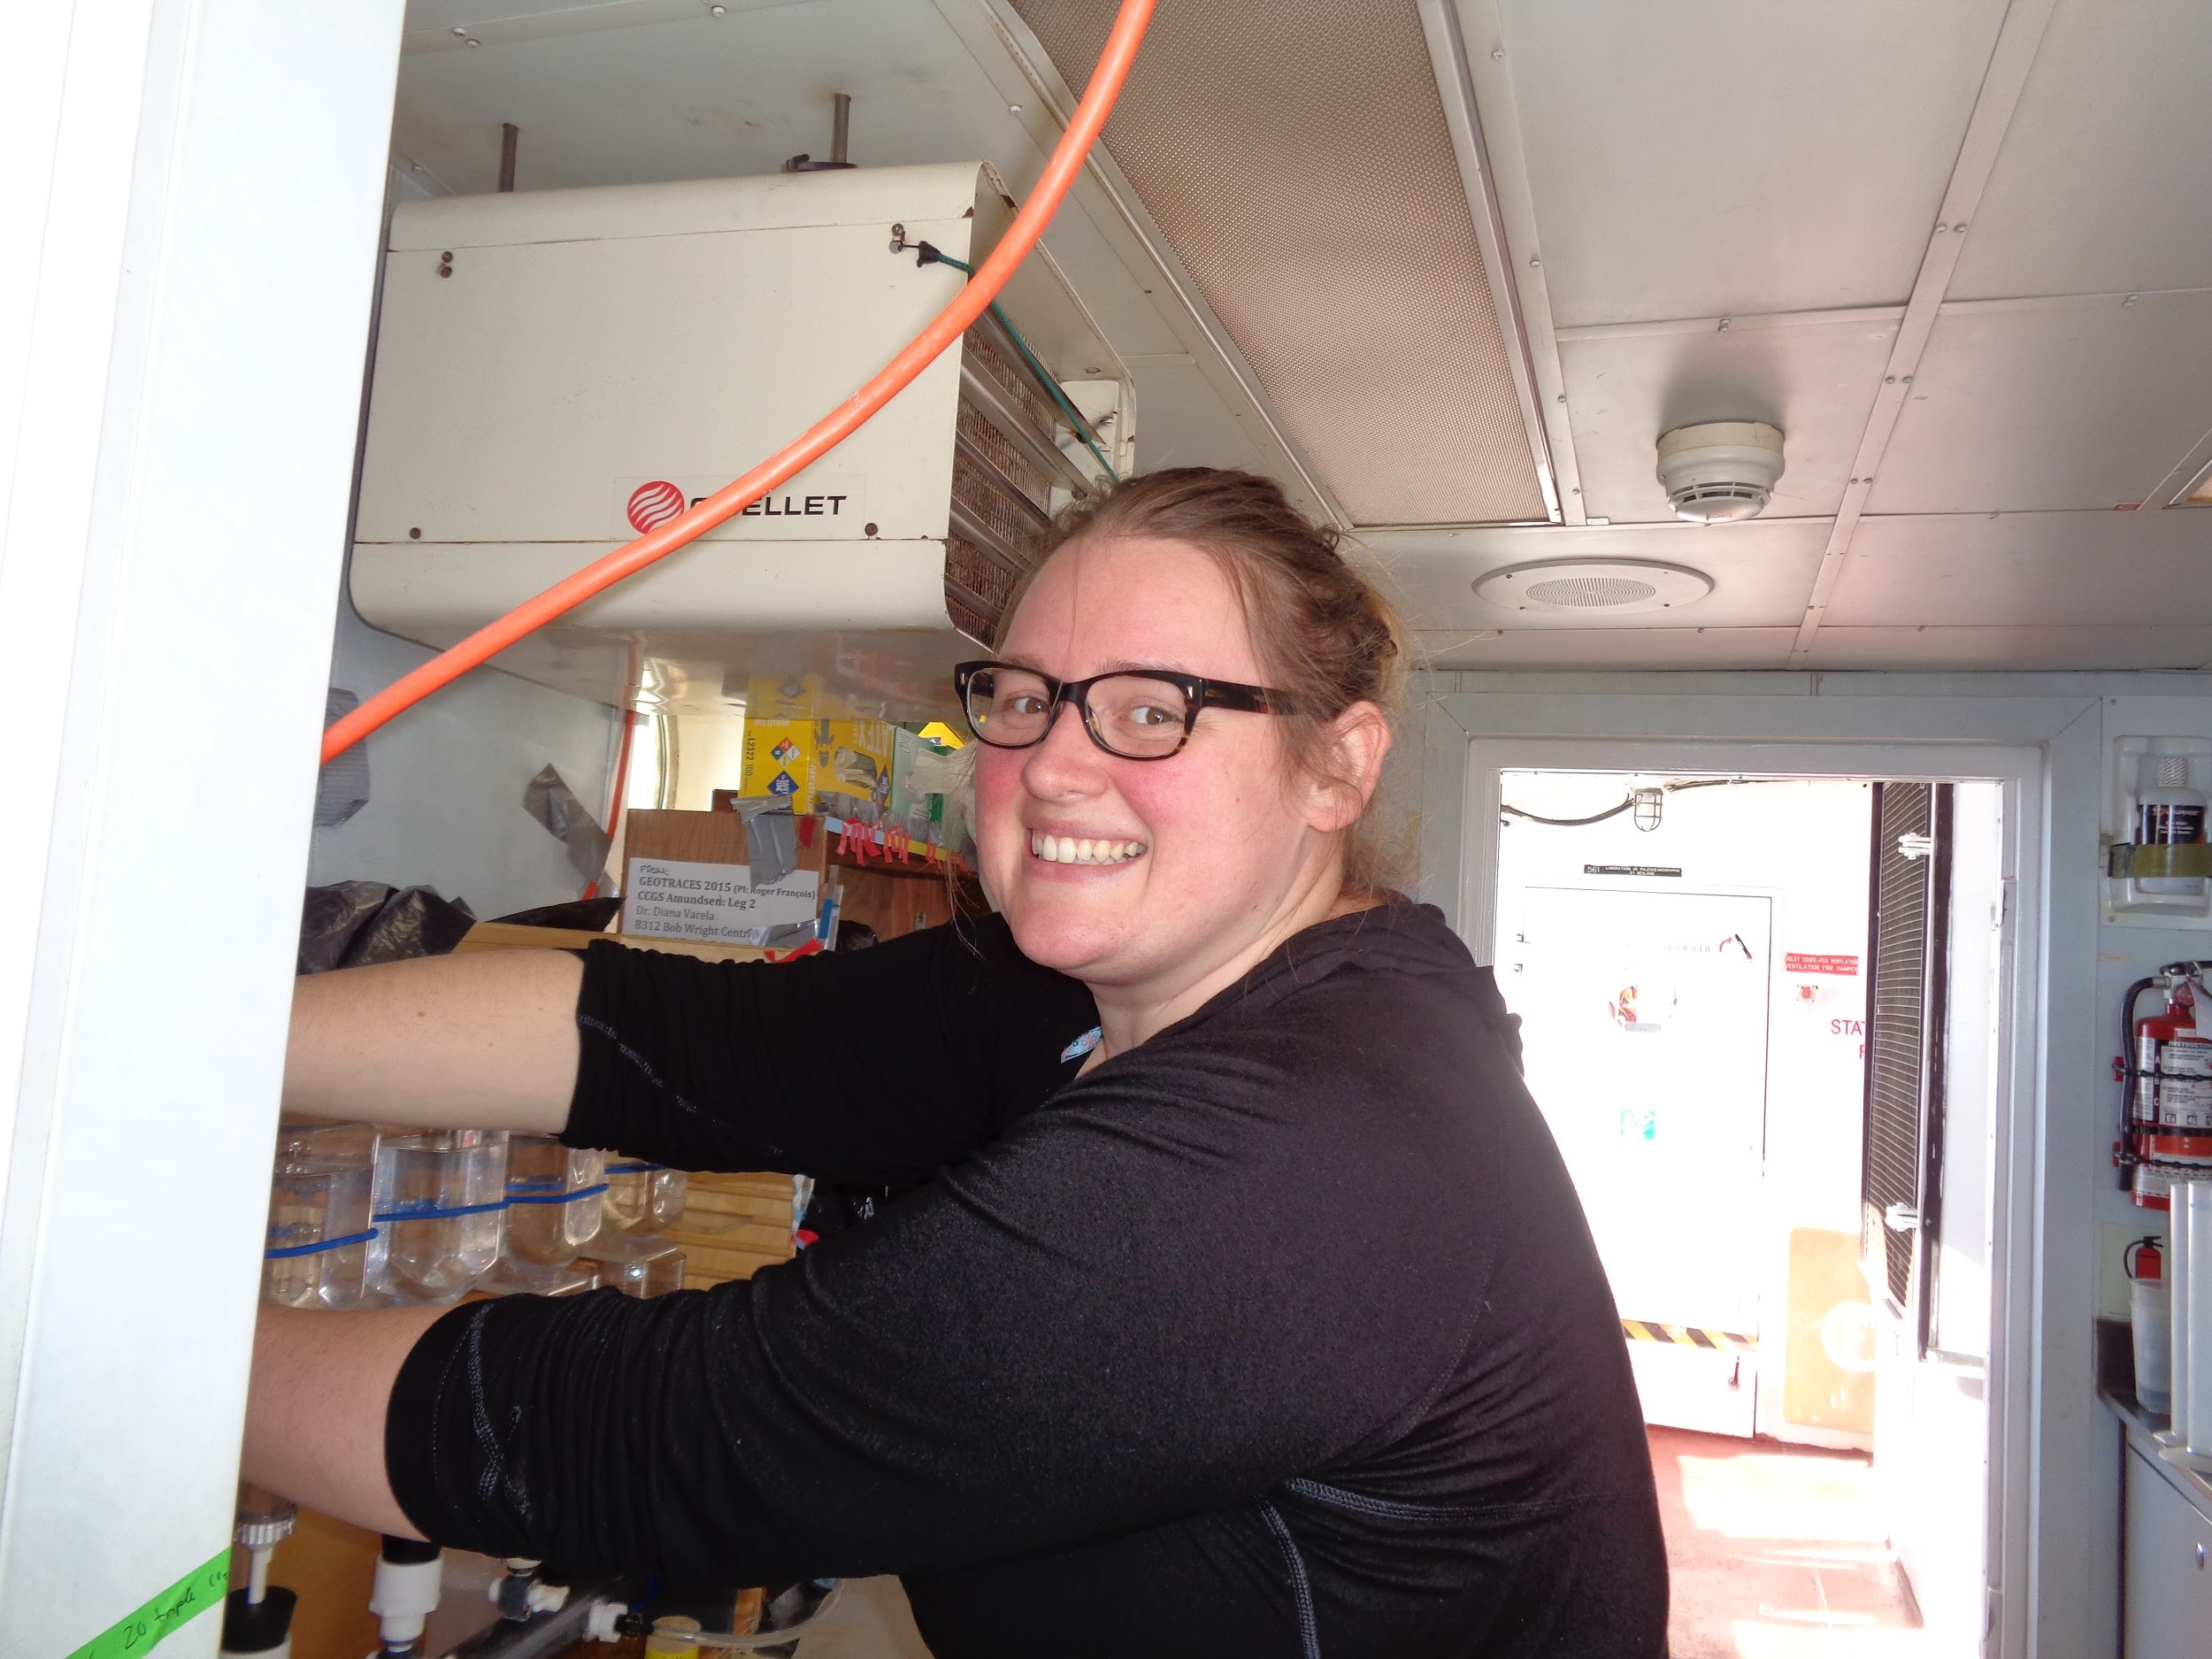 Karina filtering water samples during the 2015 Canadian Arctic GEOTRACES program on the coast guard vessel, the CCGS Amundsen